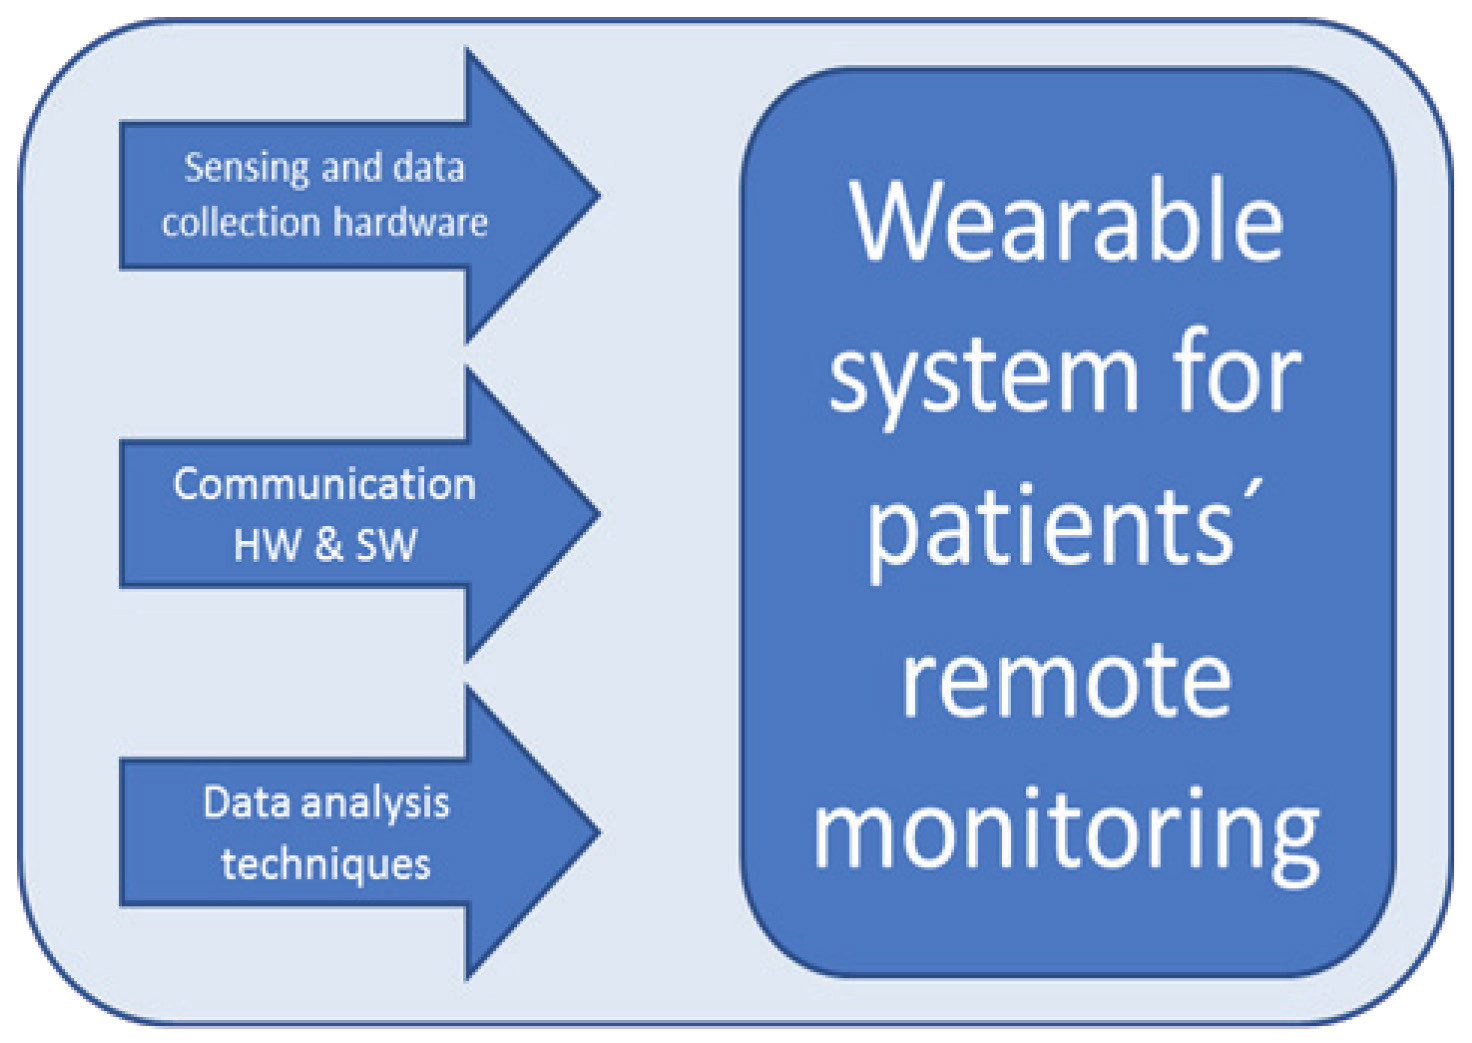 Fig. 2: General structure of wearable sensors [11]